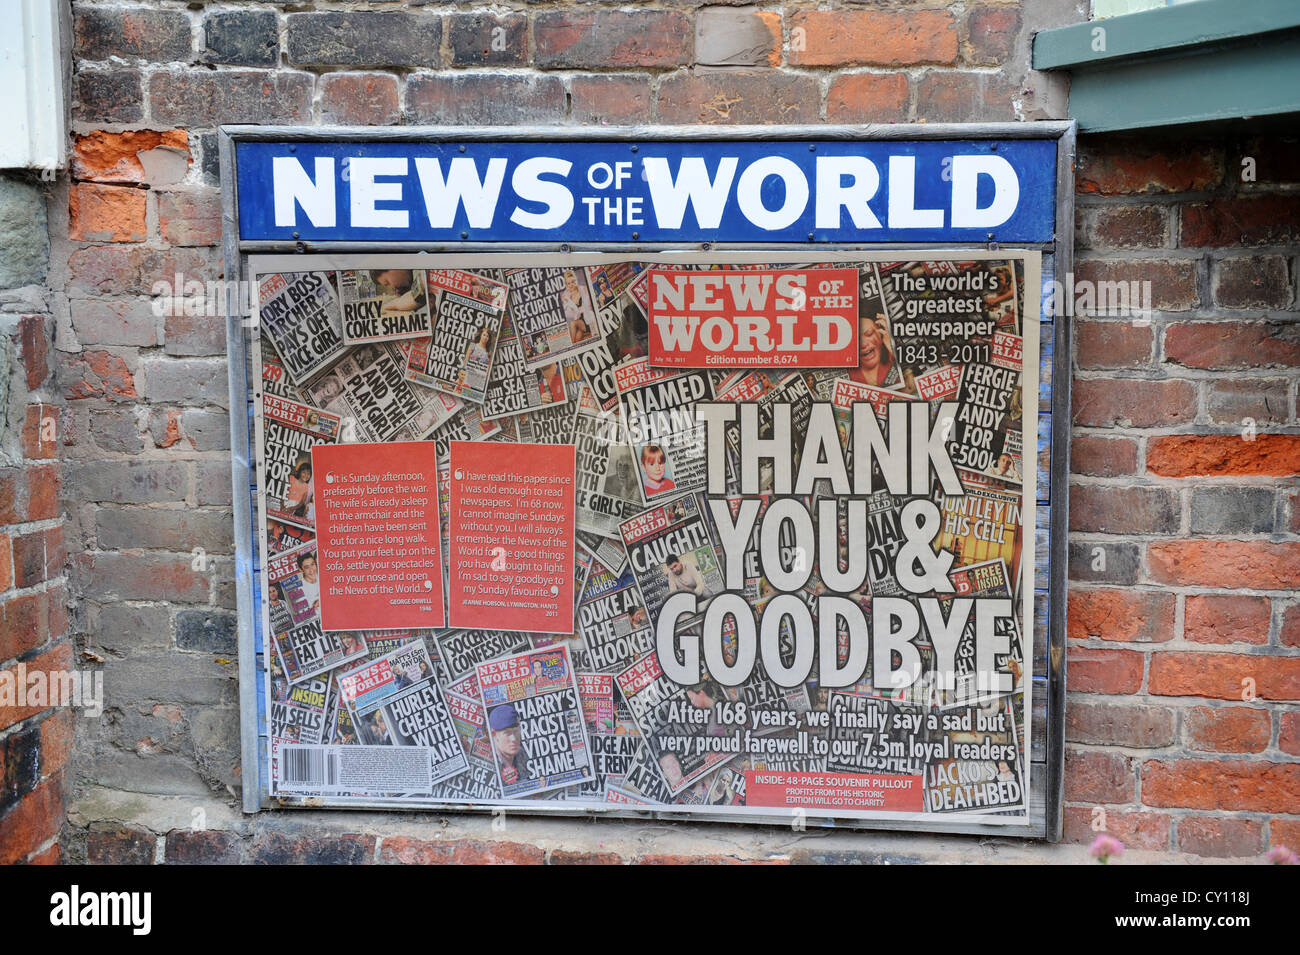 News of the World newspaper placard board final edition - Stock Image